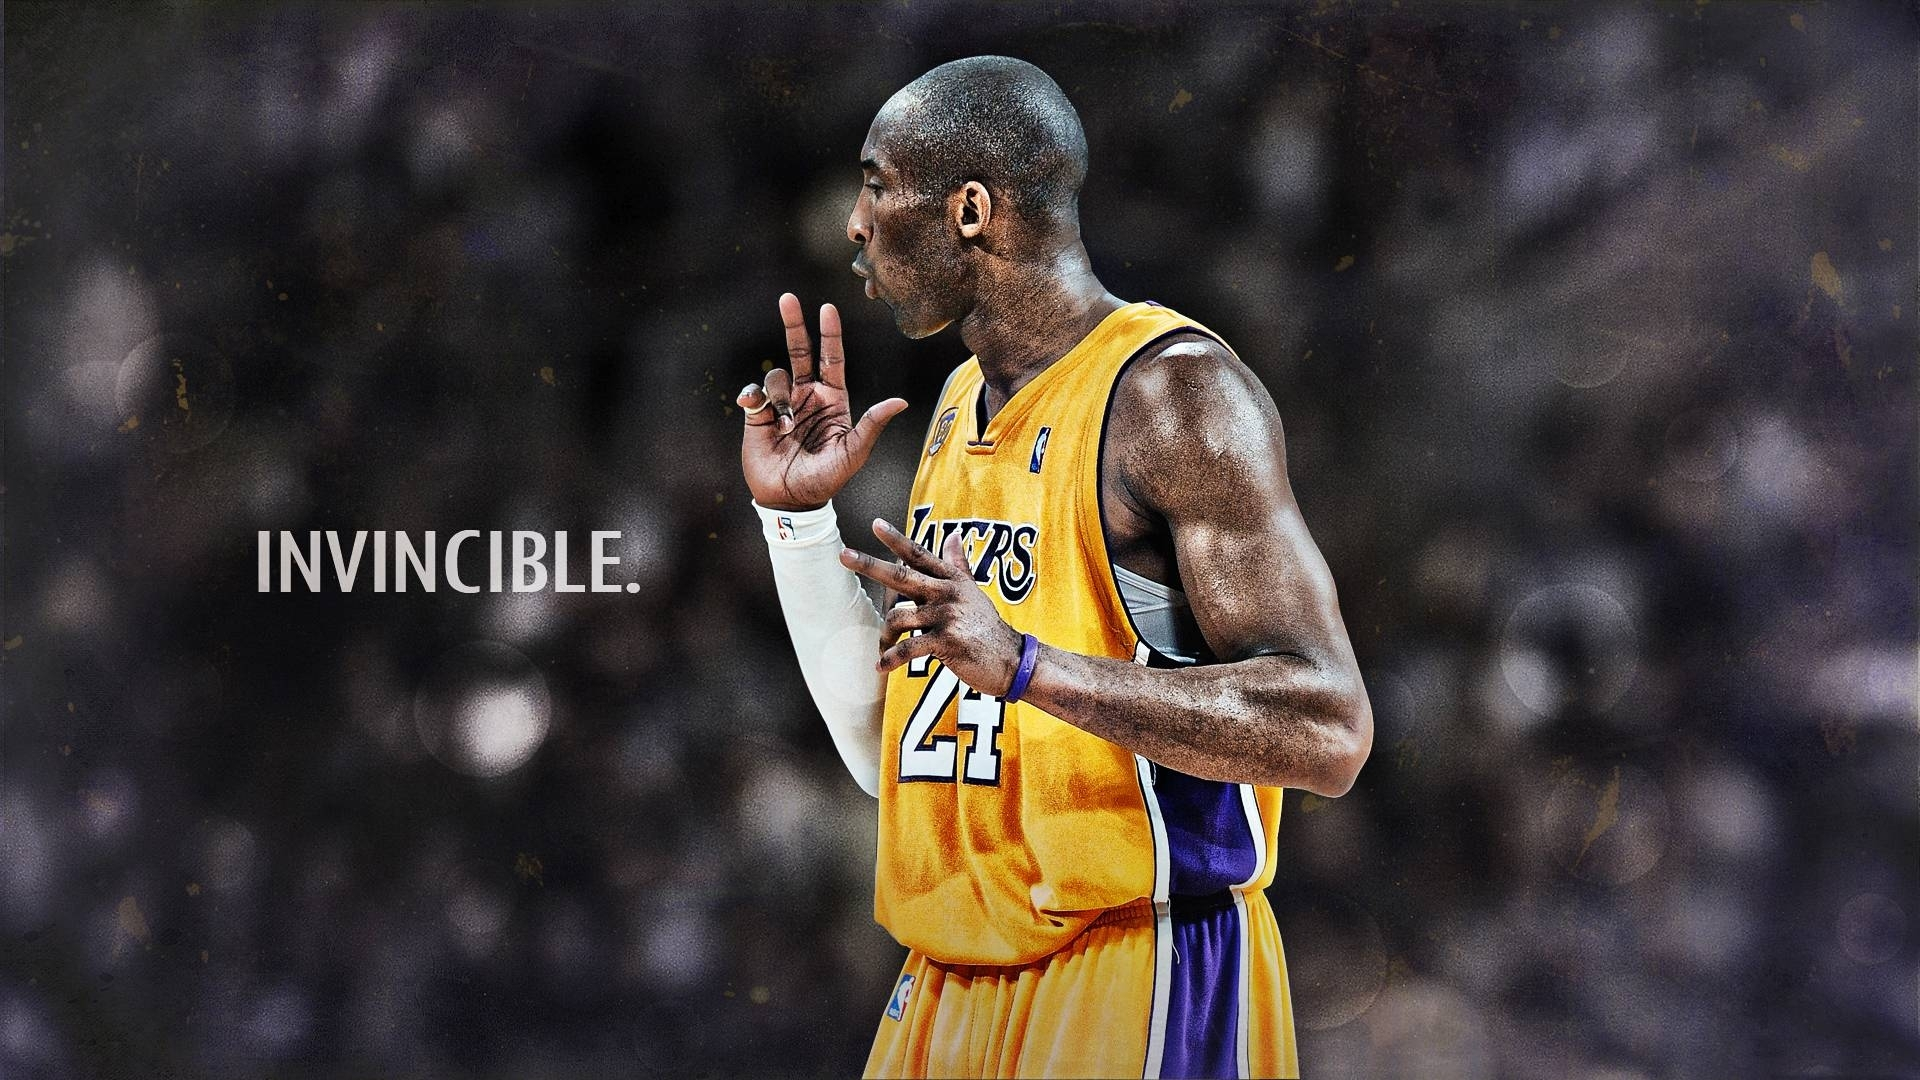 sample kobe bryant wallpaper invicible wonderful highest